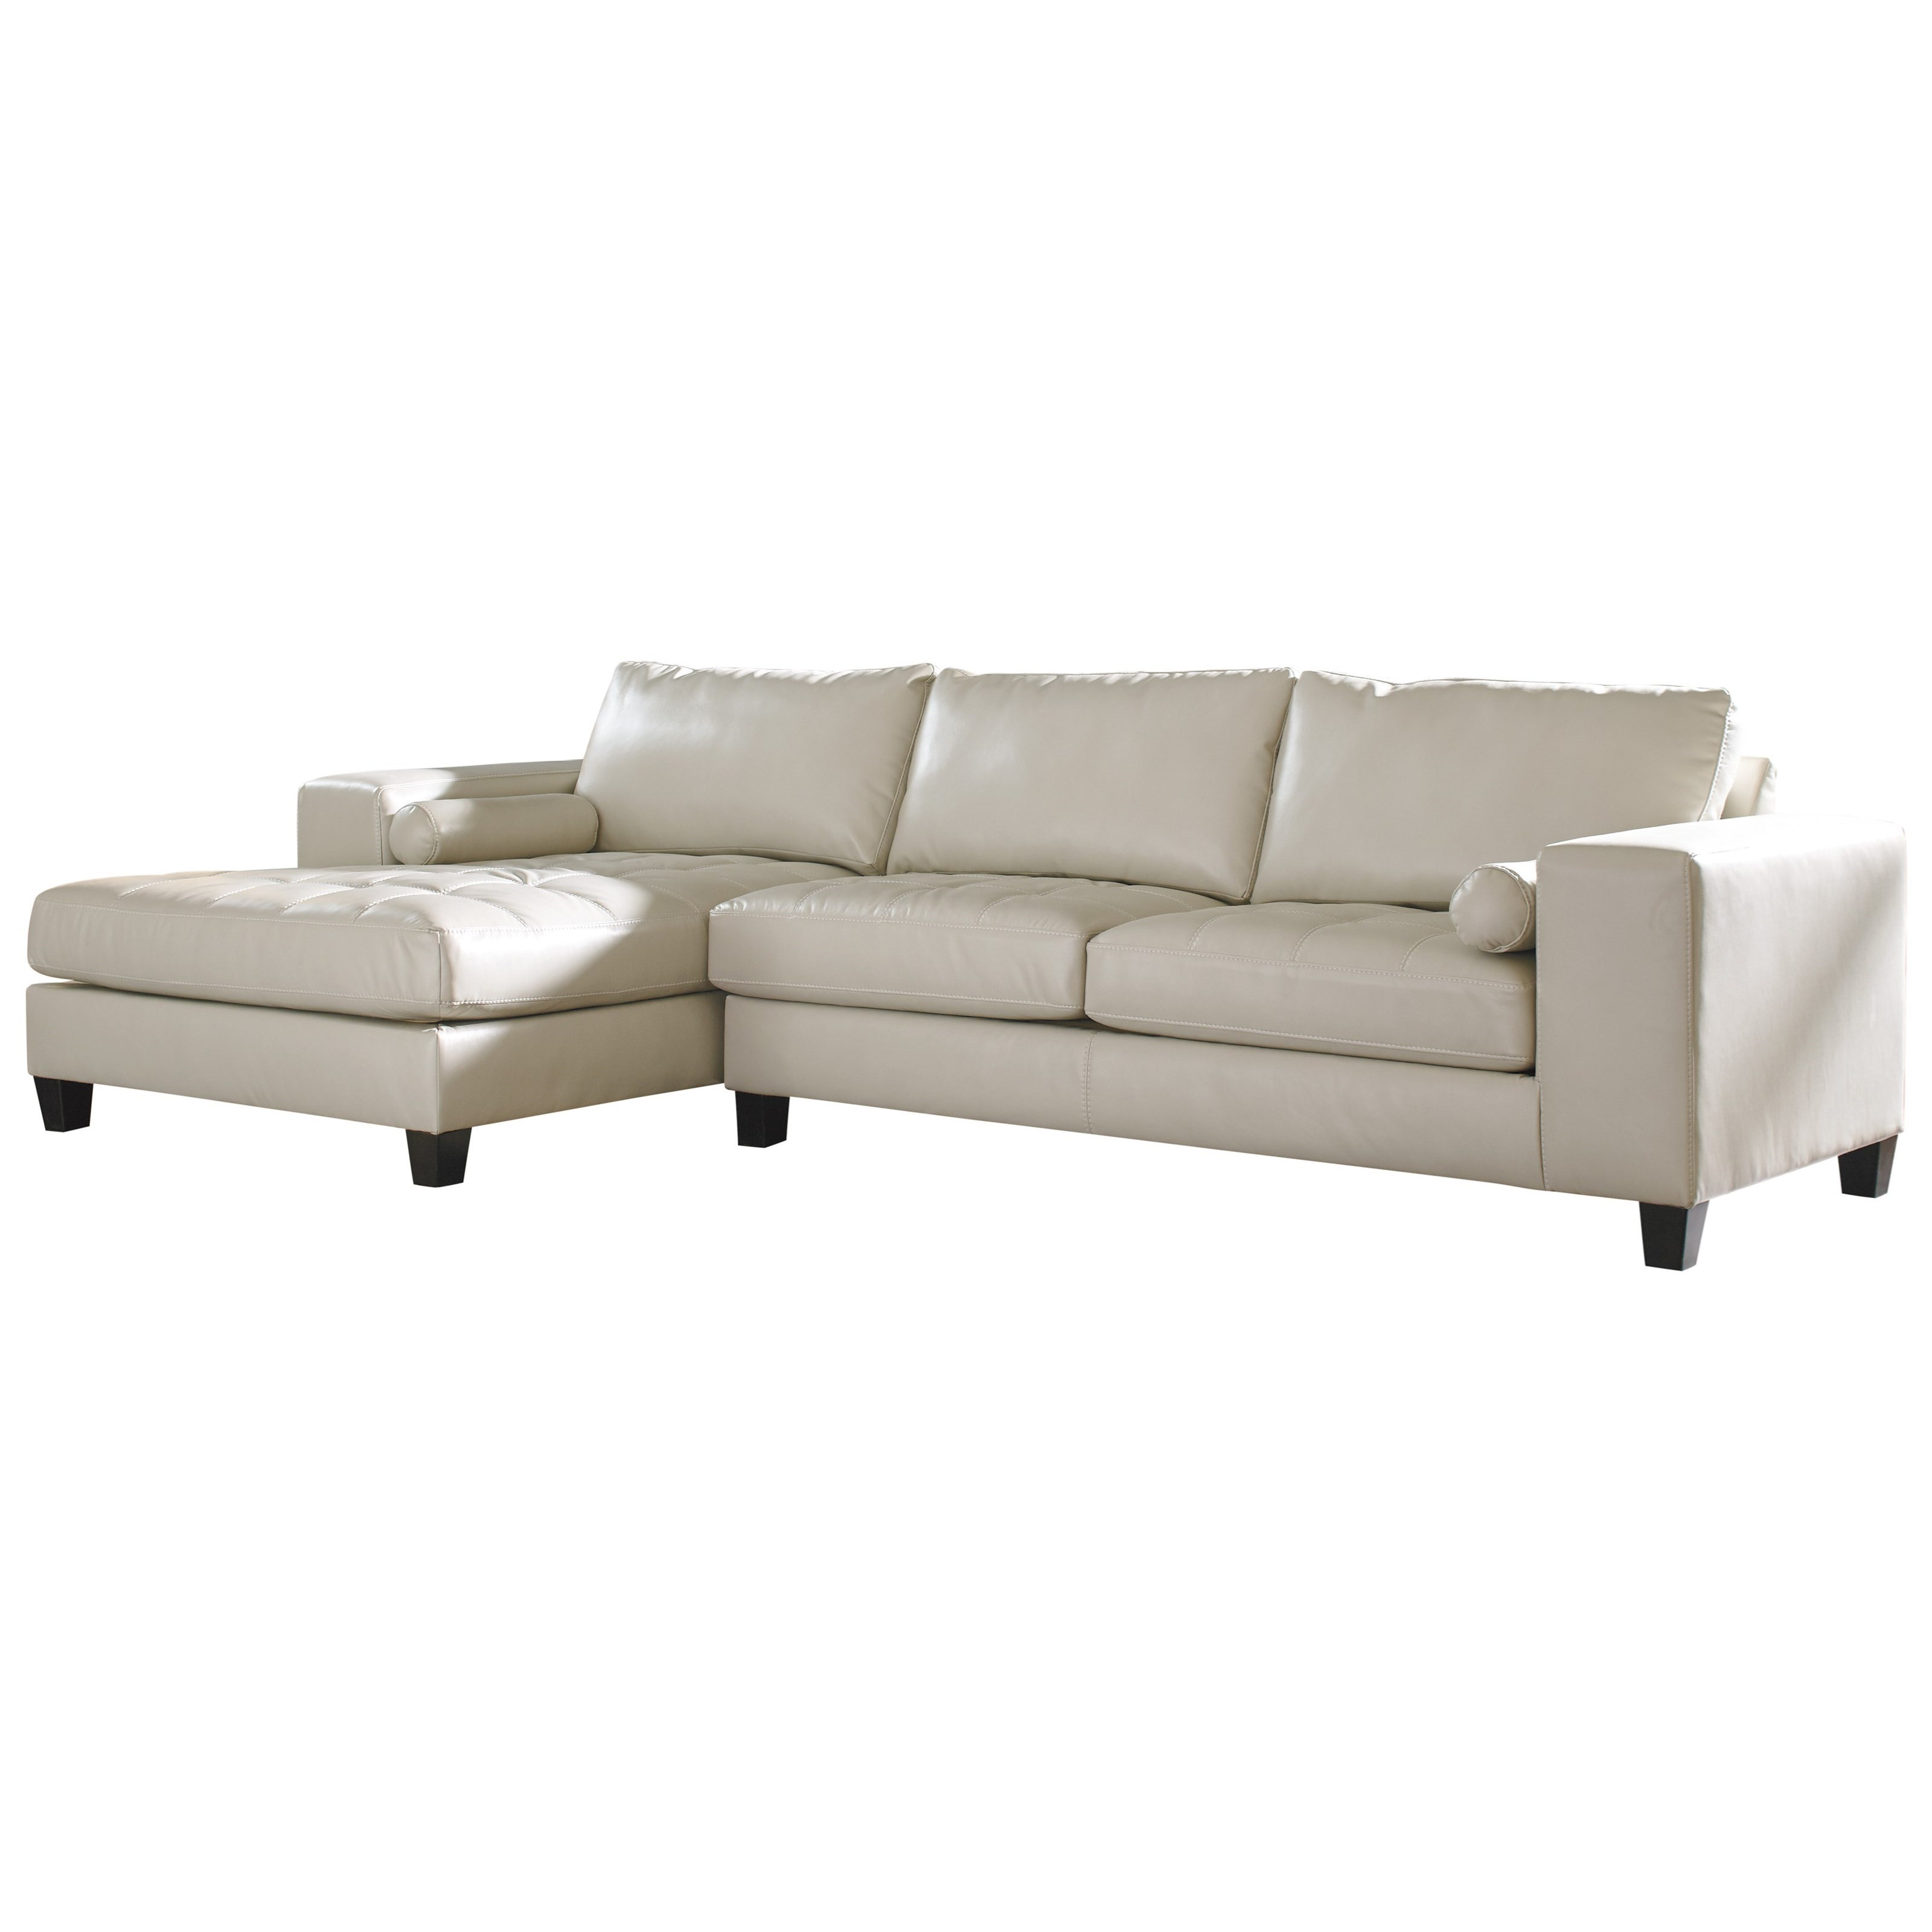 b product shop mto l sectional chaise wid zoom two mcir qlt anthropologie edlyn piece dual